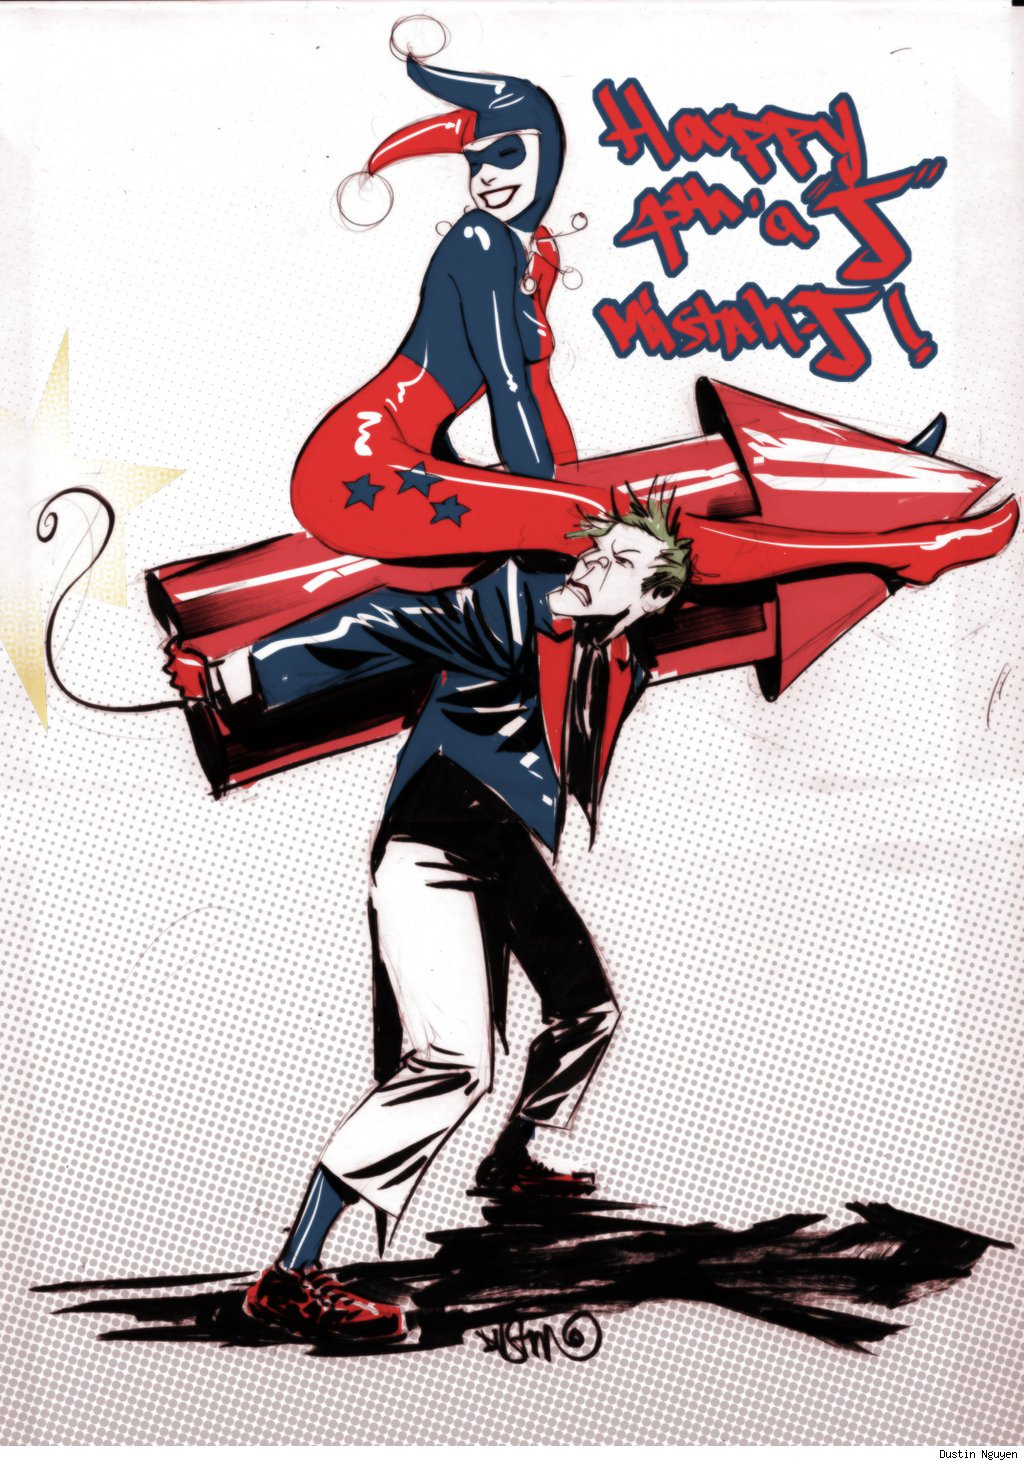 Happy Independence Day from The Joker, Harley Quinn and Dustin Nguyen